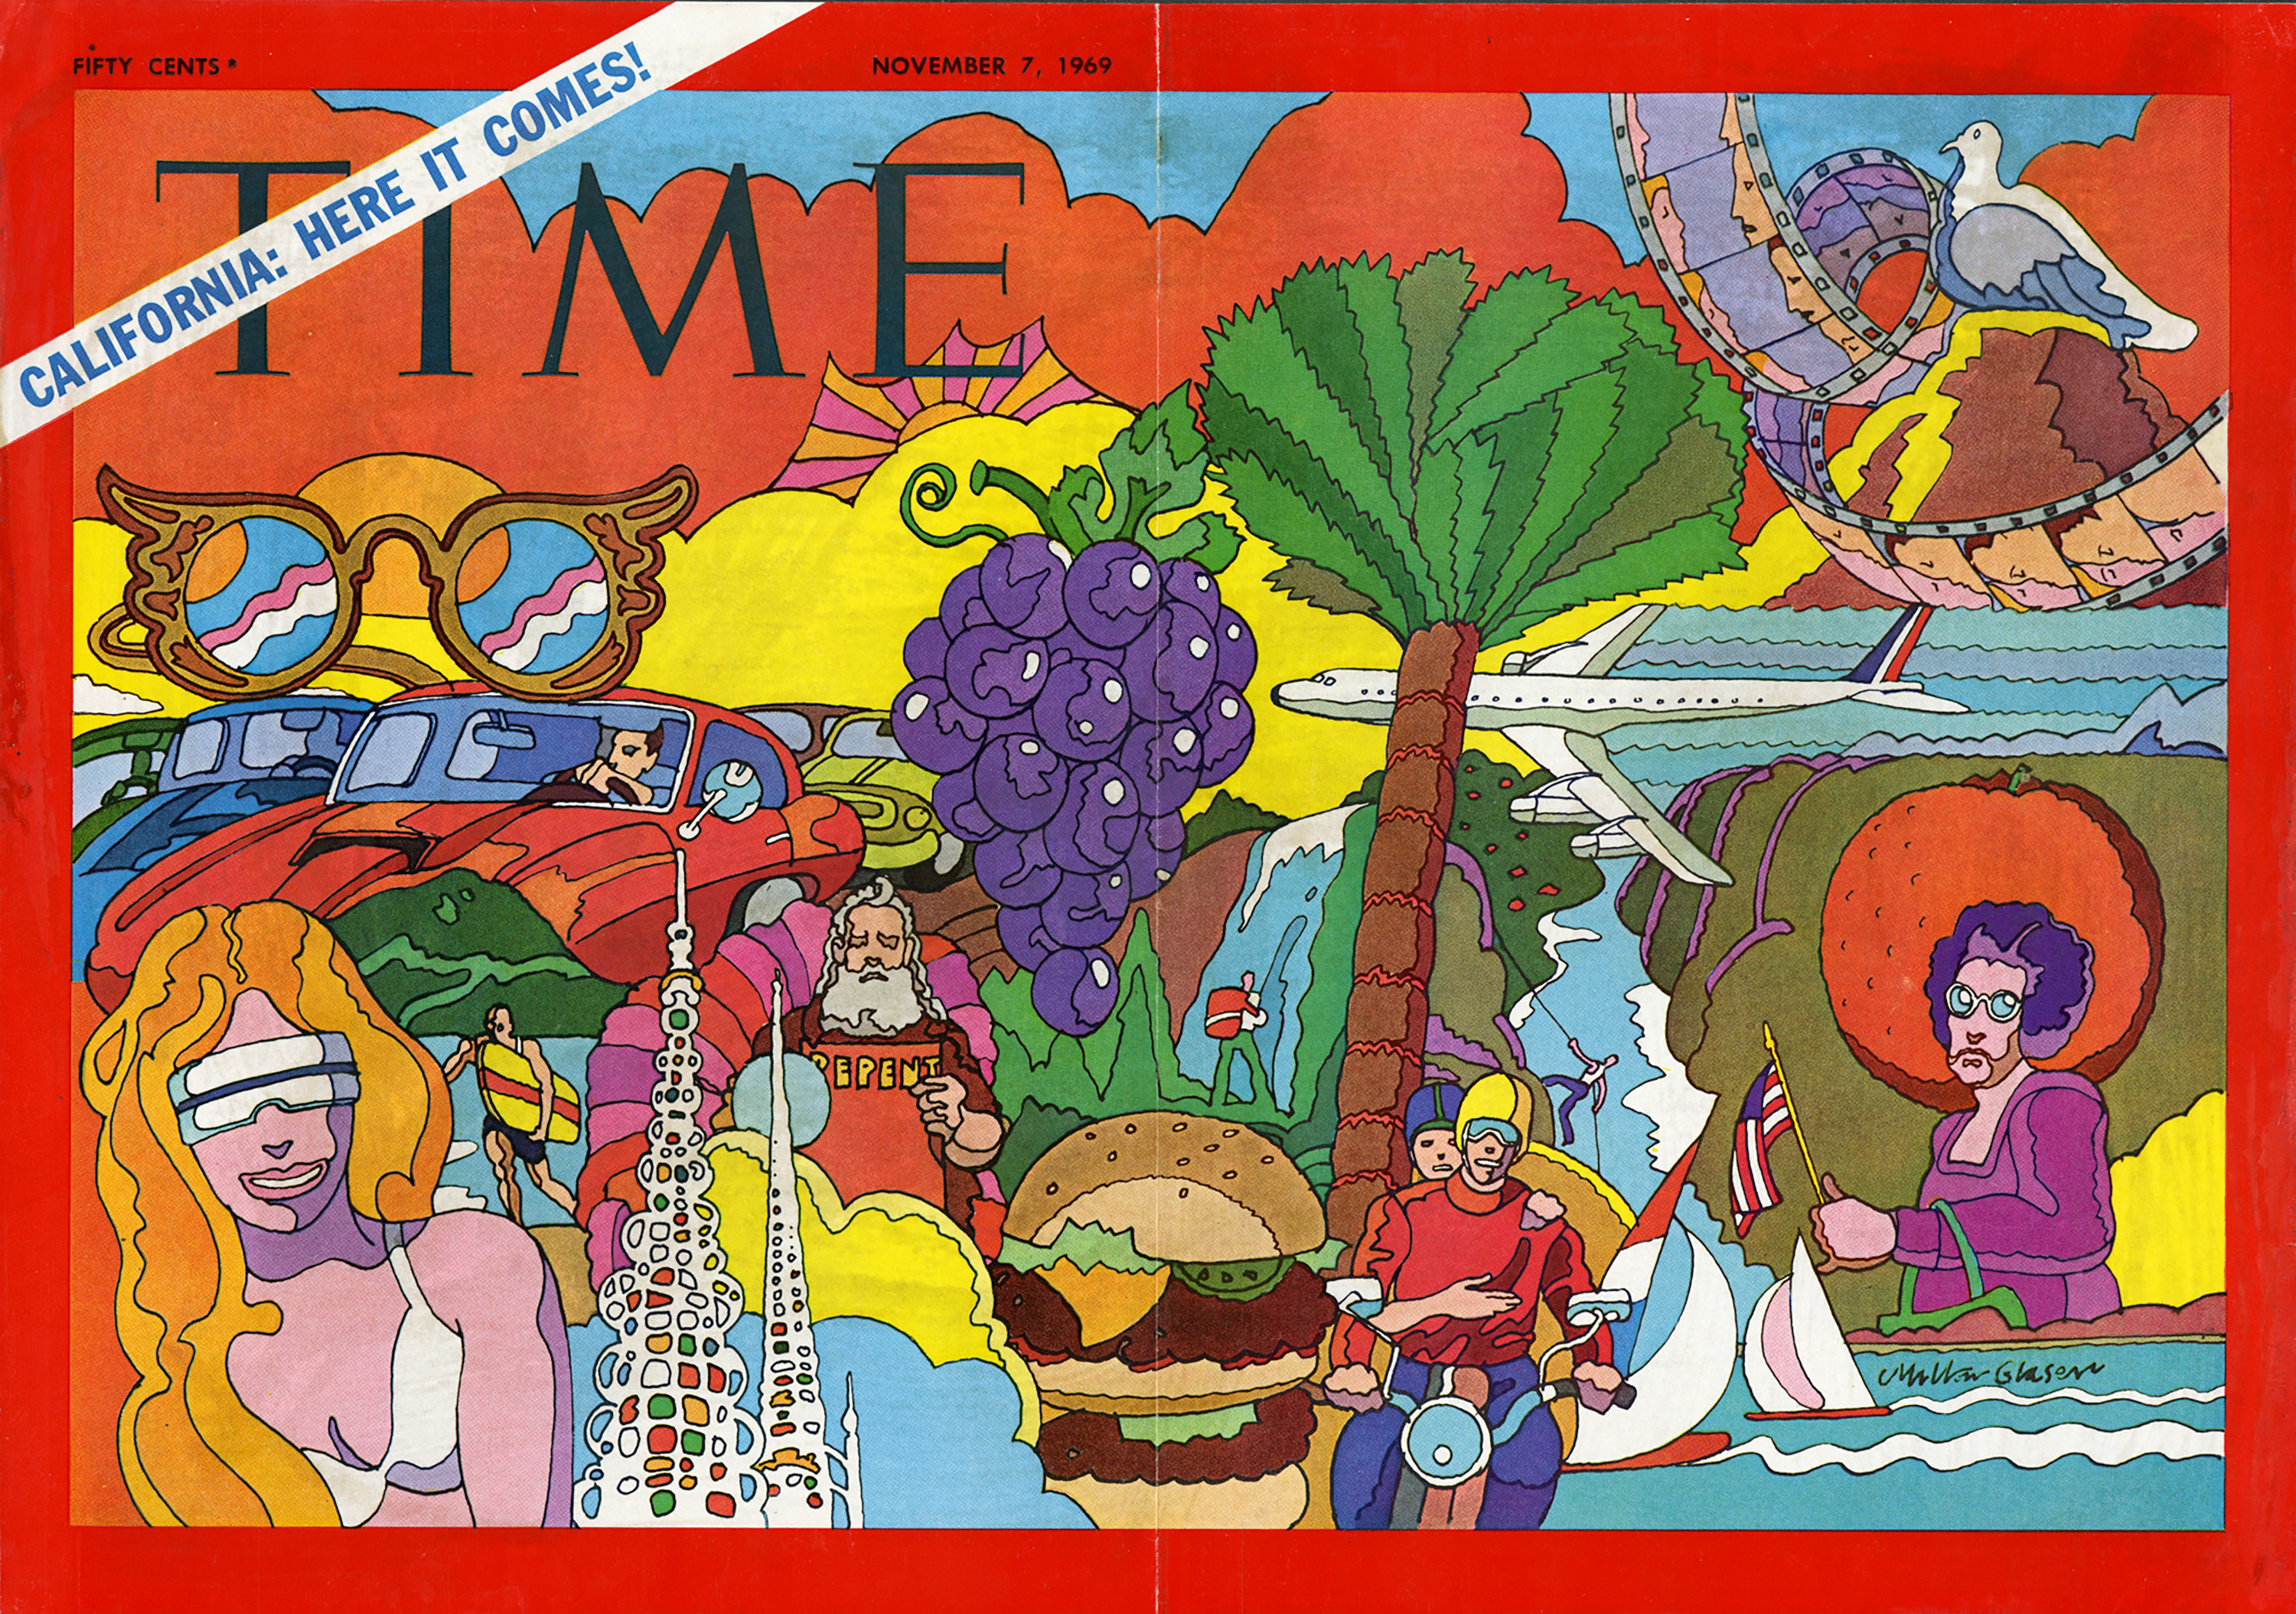 Colorful illustration of various California icons, including grapes, palm trees, cars, beach scenes, film strips and hamburgers.